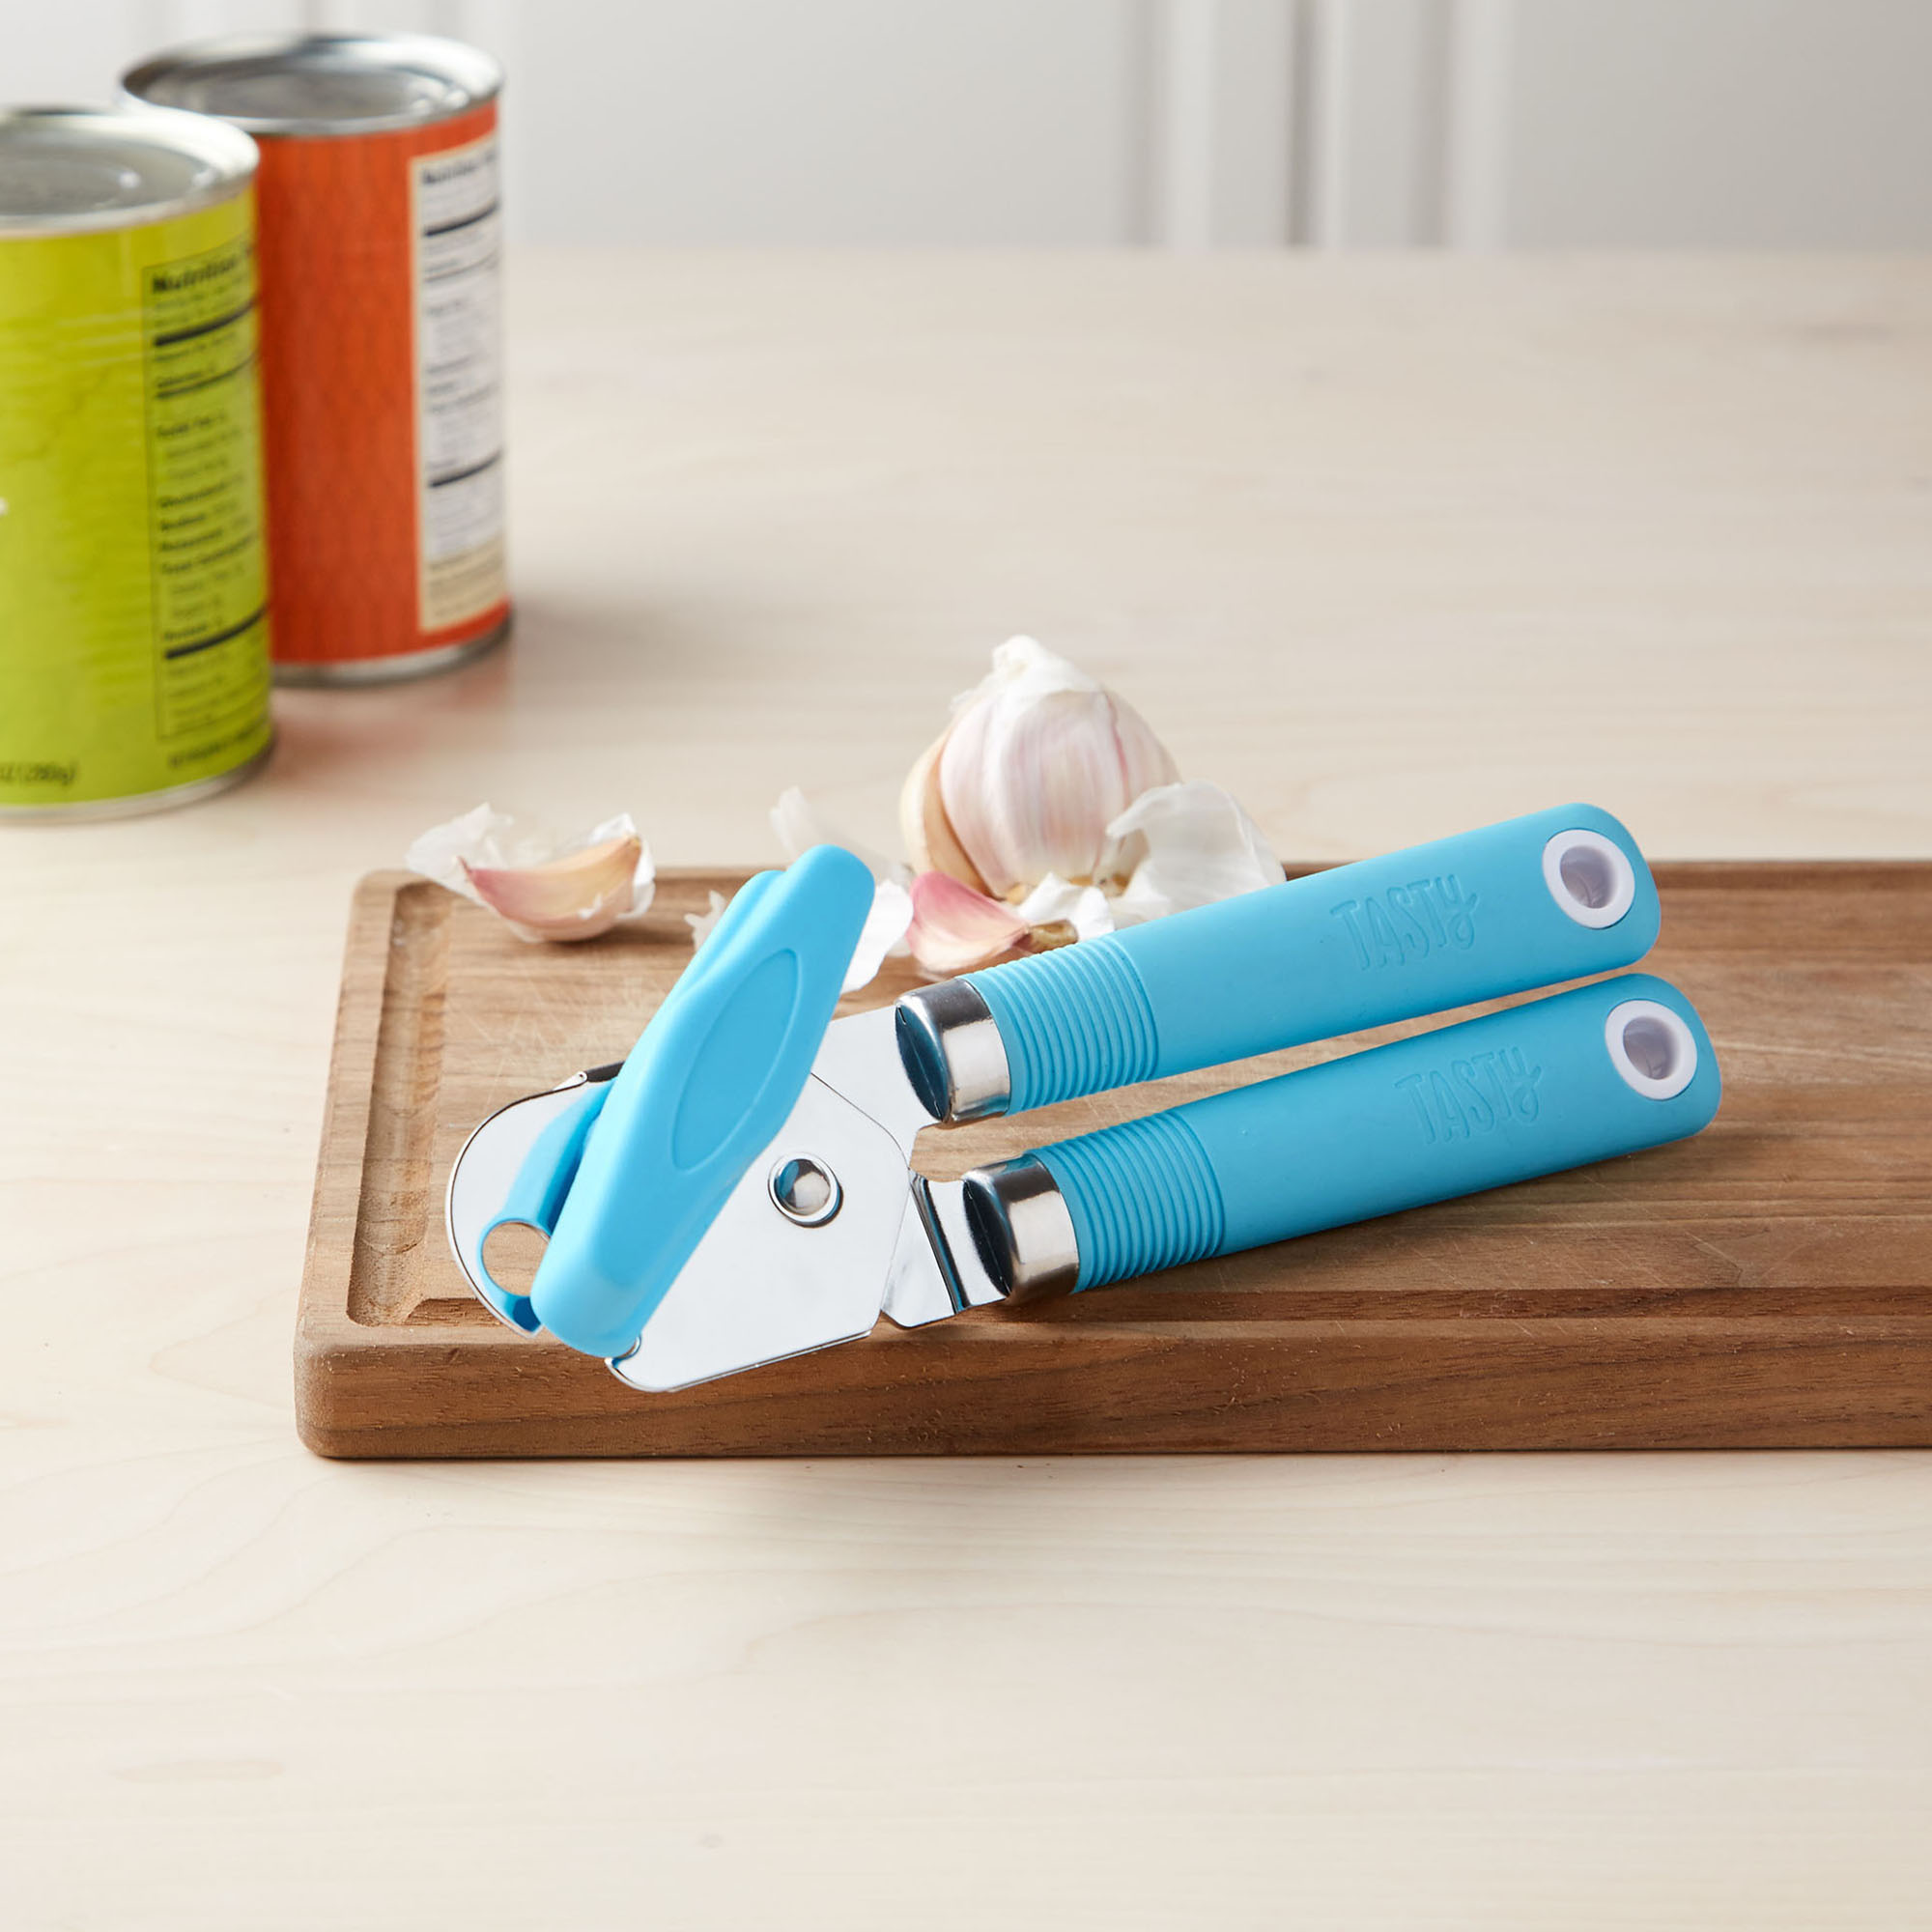 Tasty Manual Can Opener - with Silicone Handle, Green